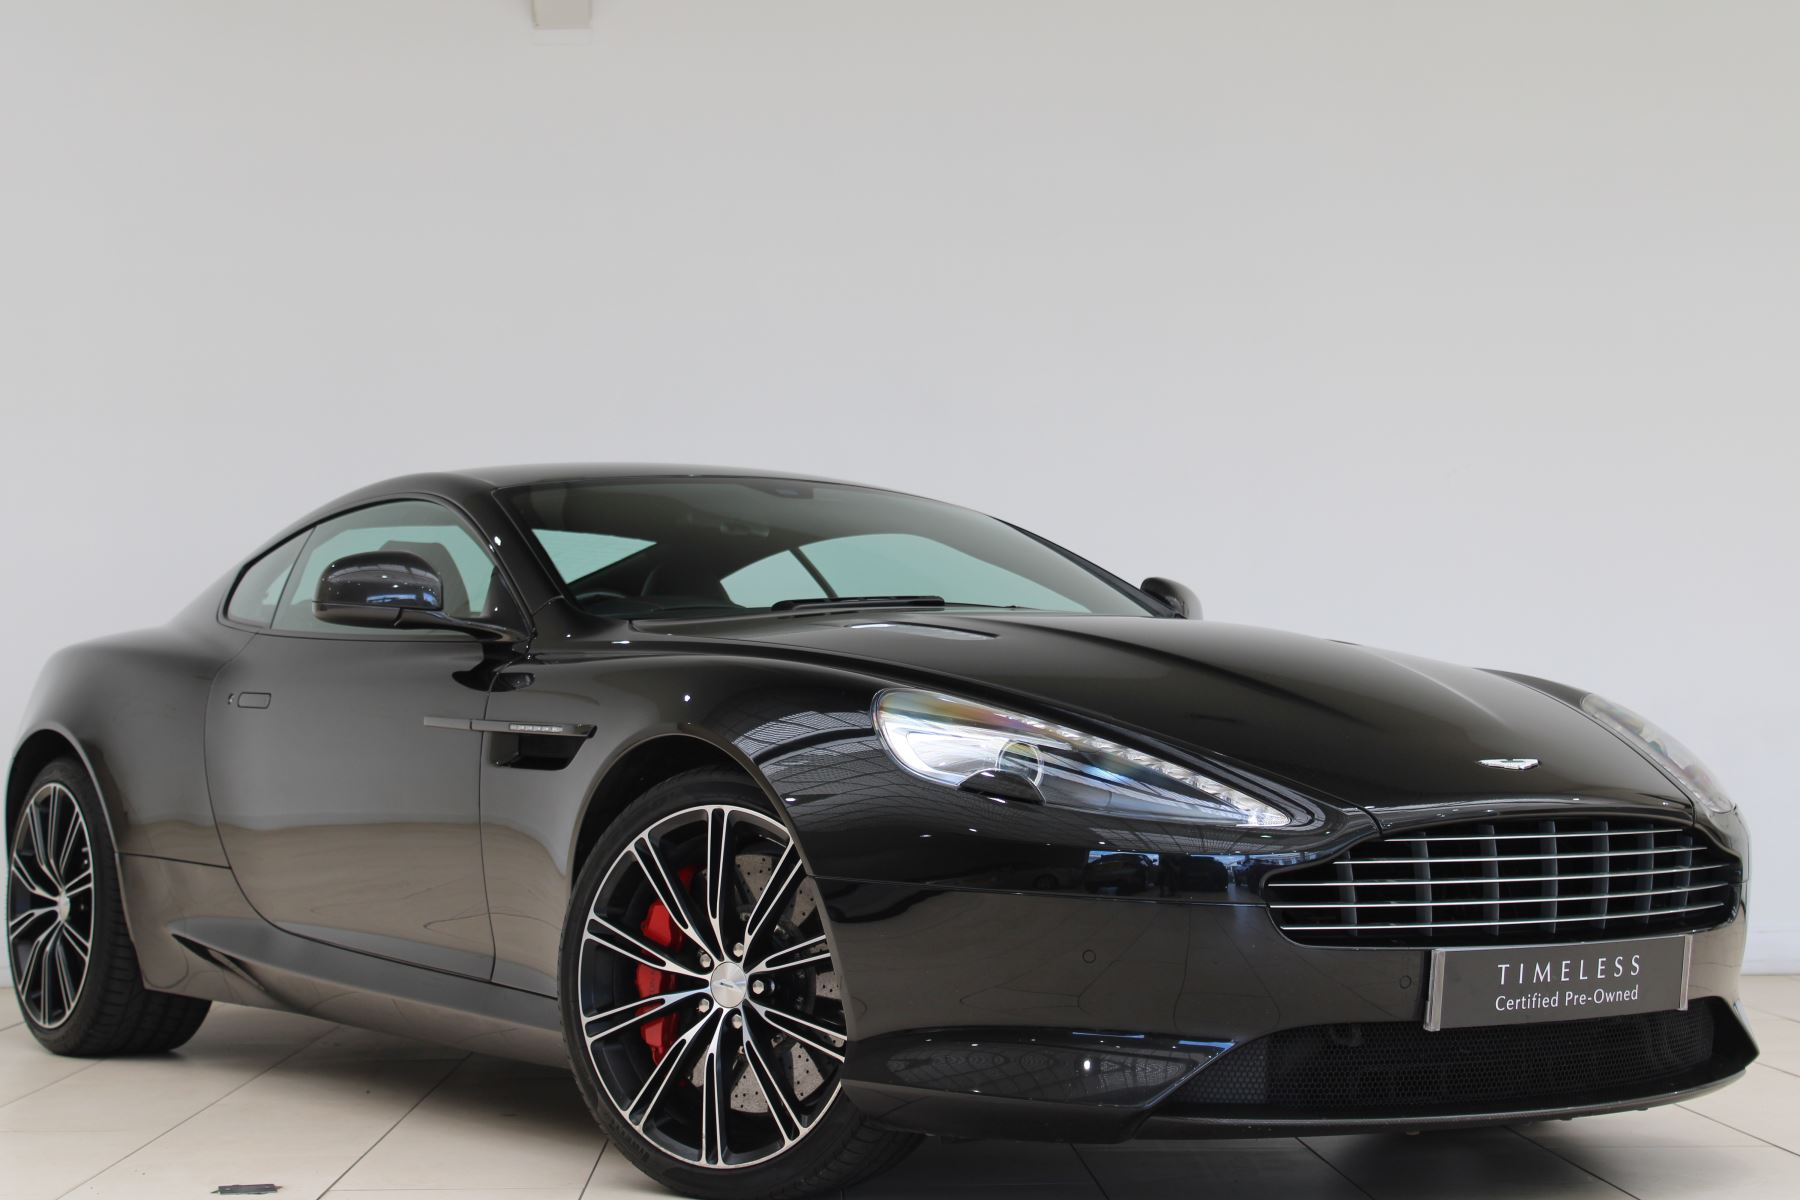 Aston Martin DB9 Carbon Edition V12 2dr Touchtronic 5.9 Automatic Coupe